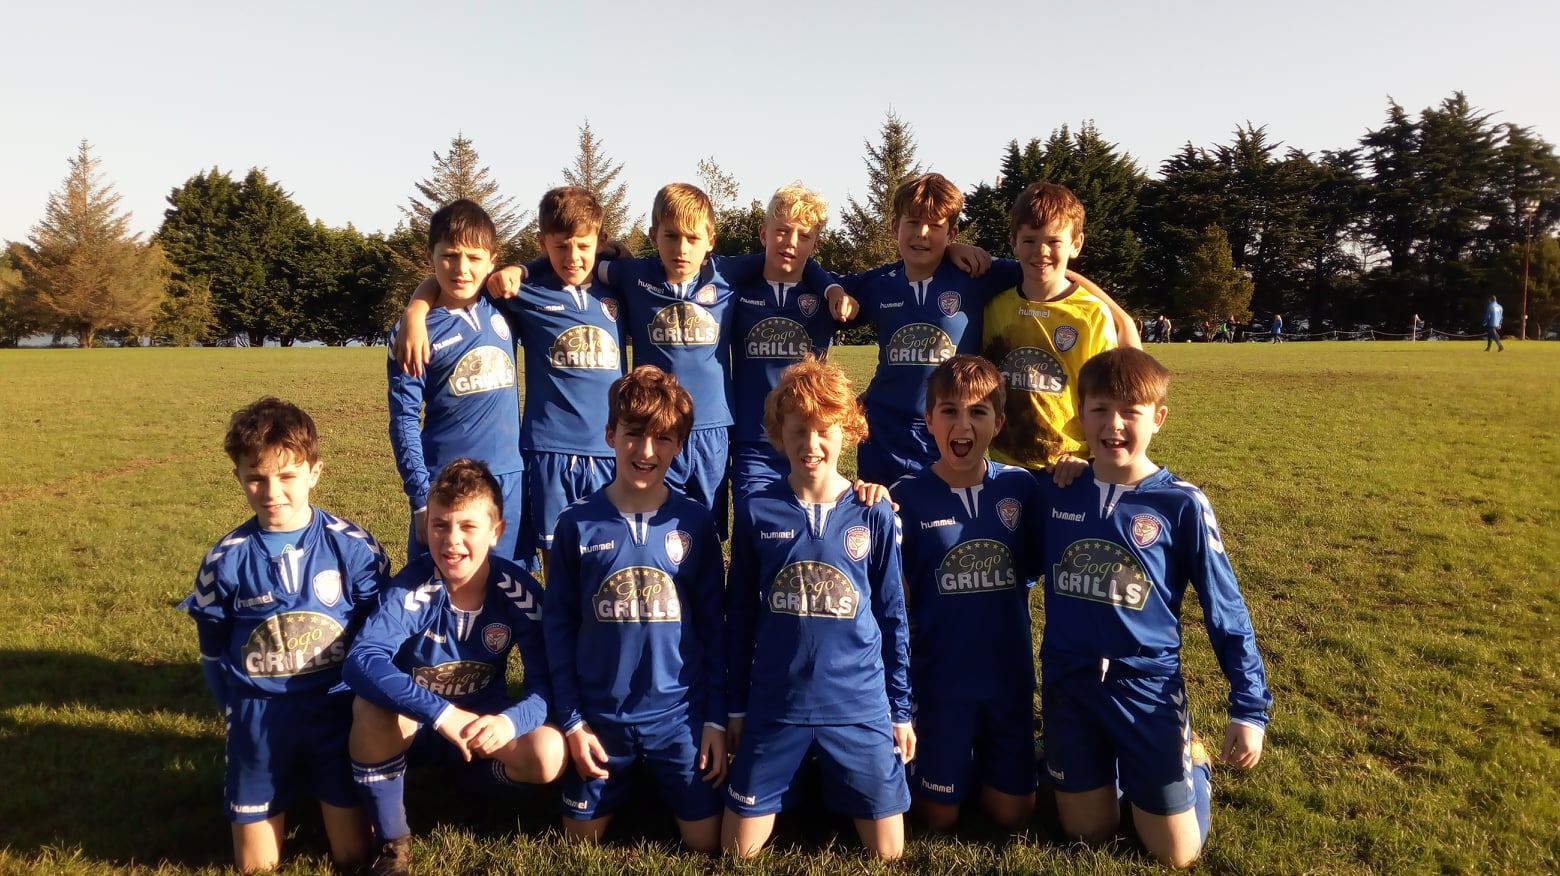 U-12 National Cup – Corkbeg 2 Blarney United 2 (Corkbeg win 3-2 on pens)